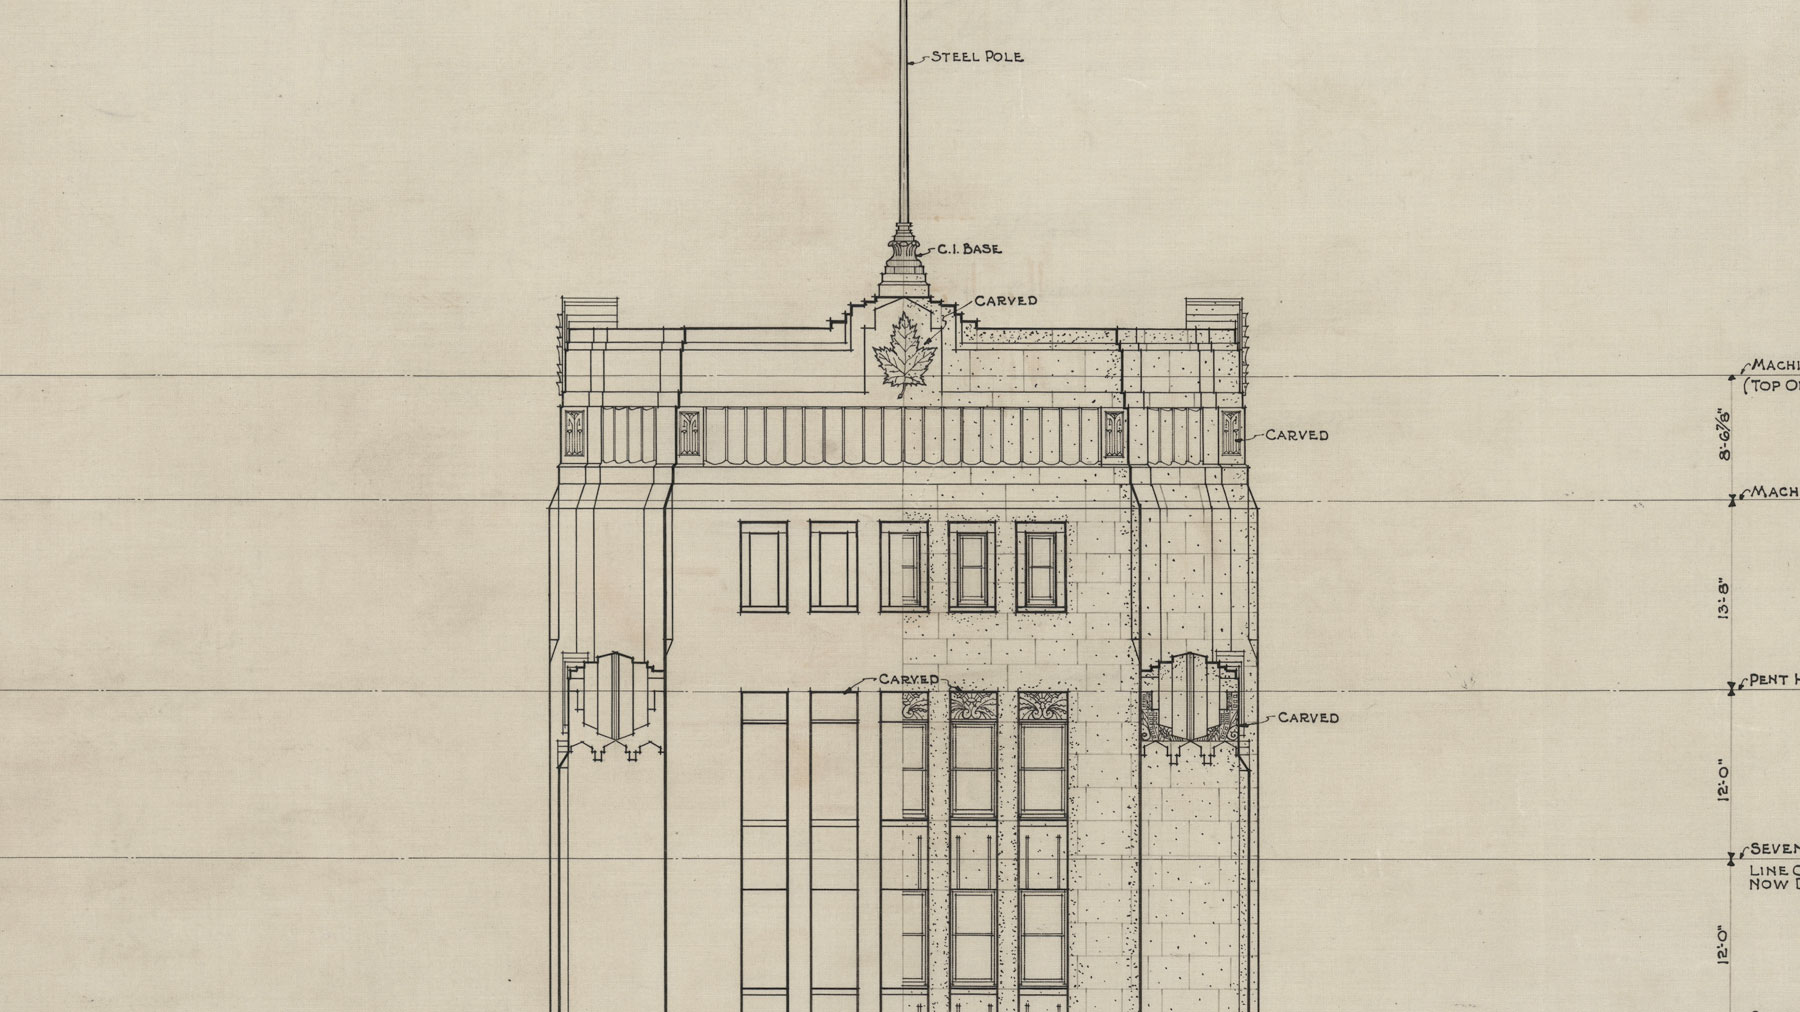 Elevation Architectural Drawings And Diagrams The Dominion Public Building